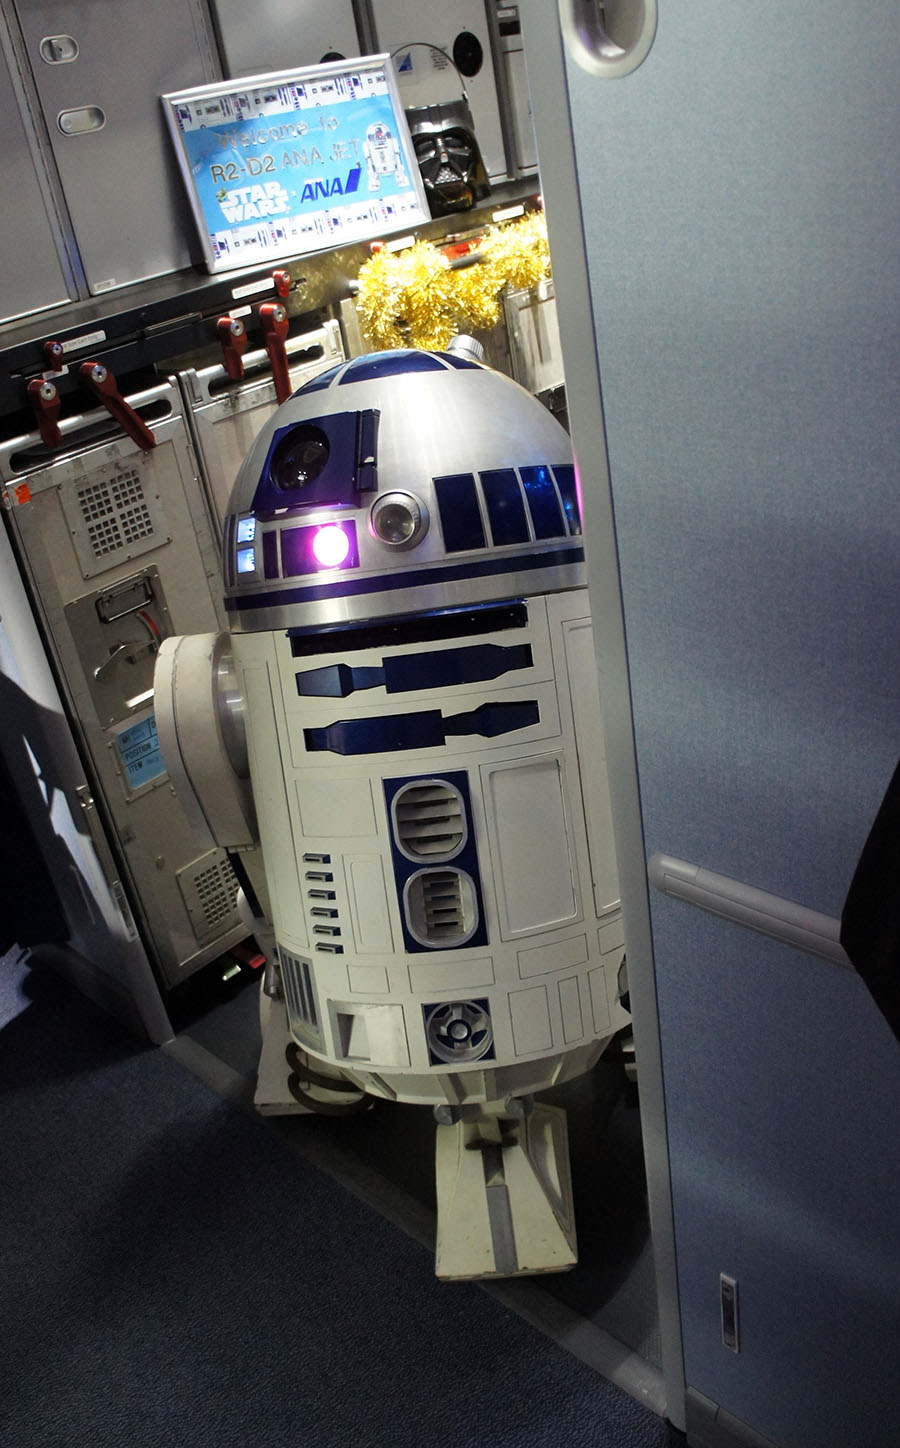 Impressive, R2 managed to squeeze on board.